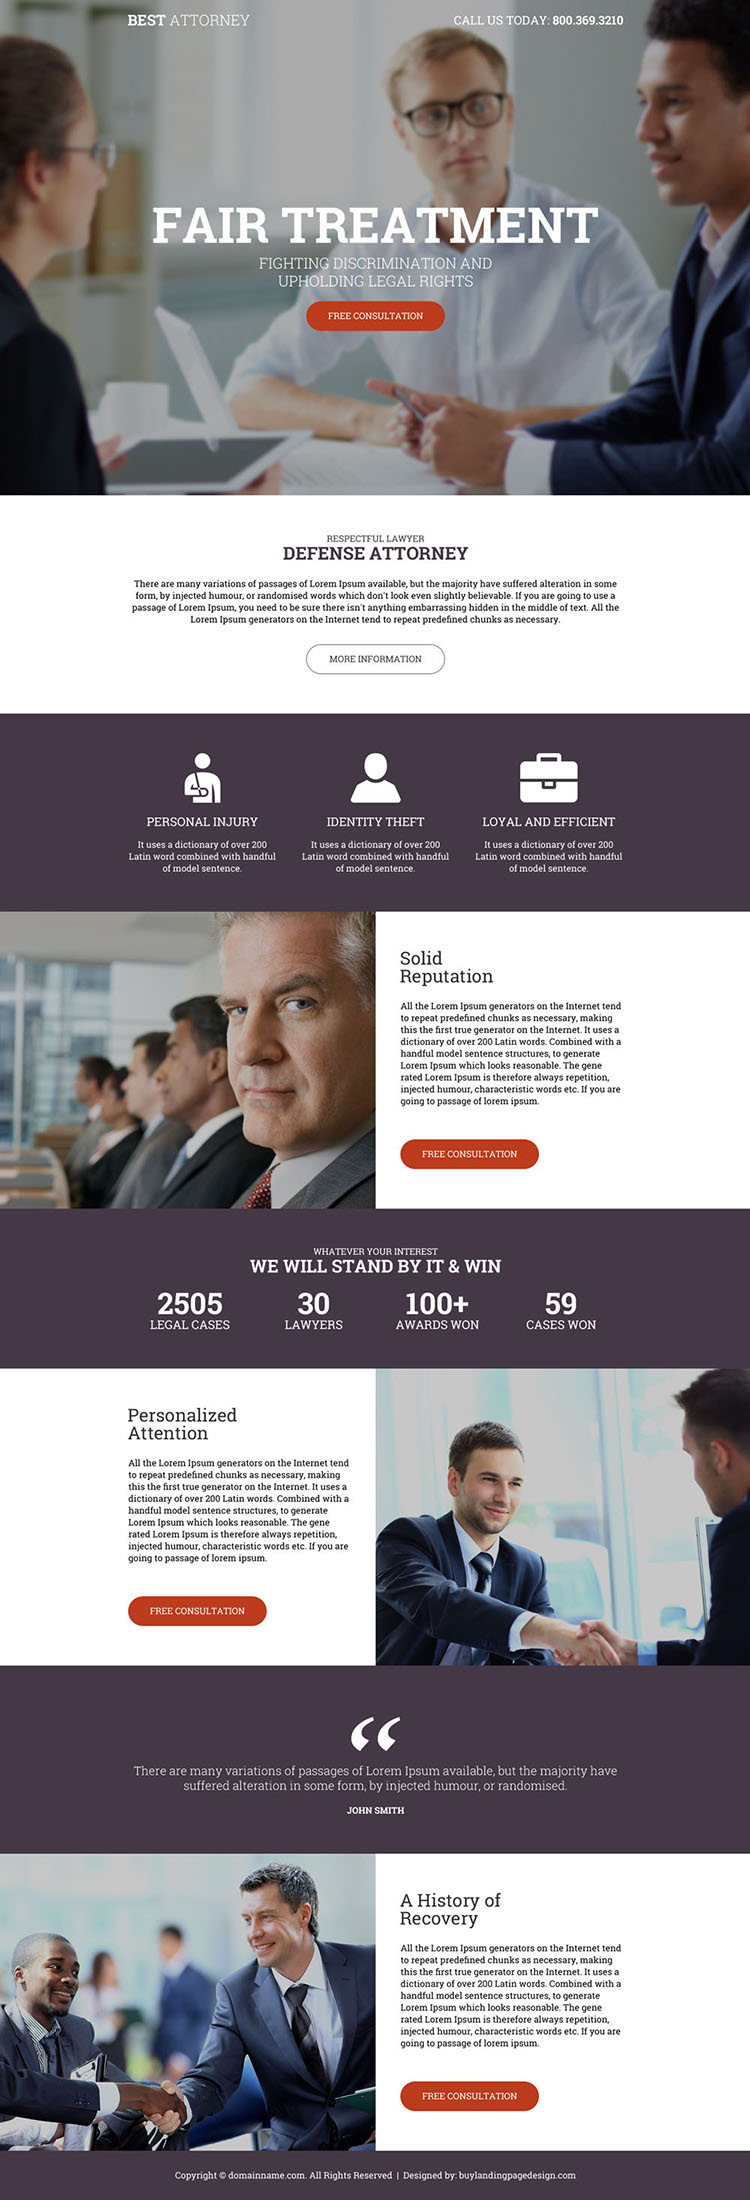 responsive defence attorney free consultation landing page